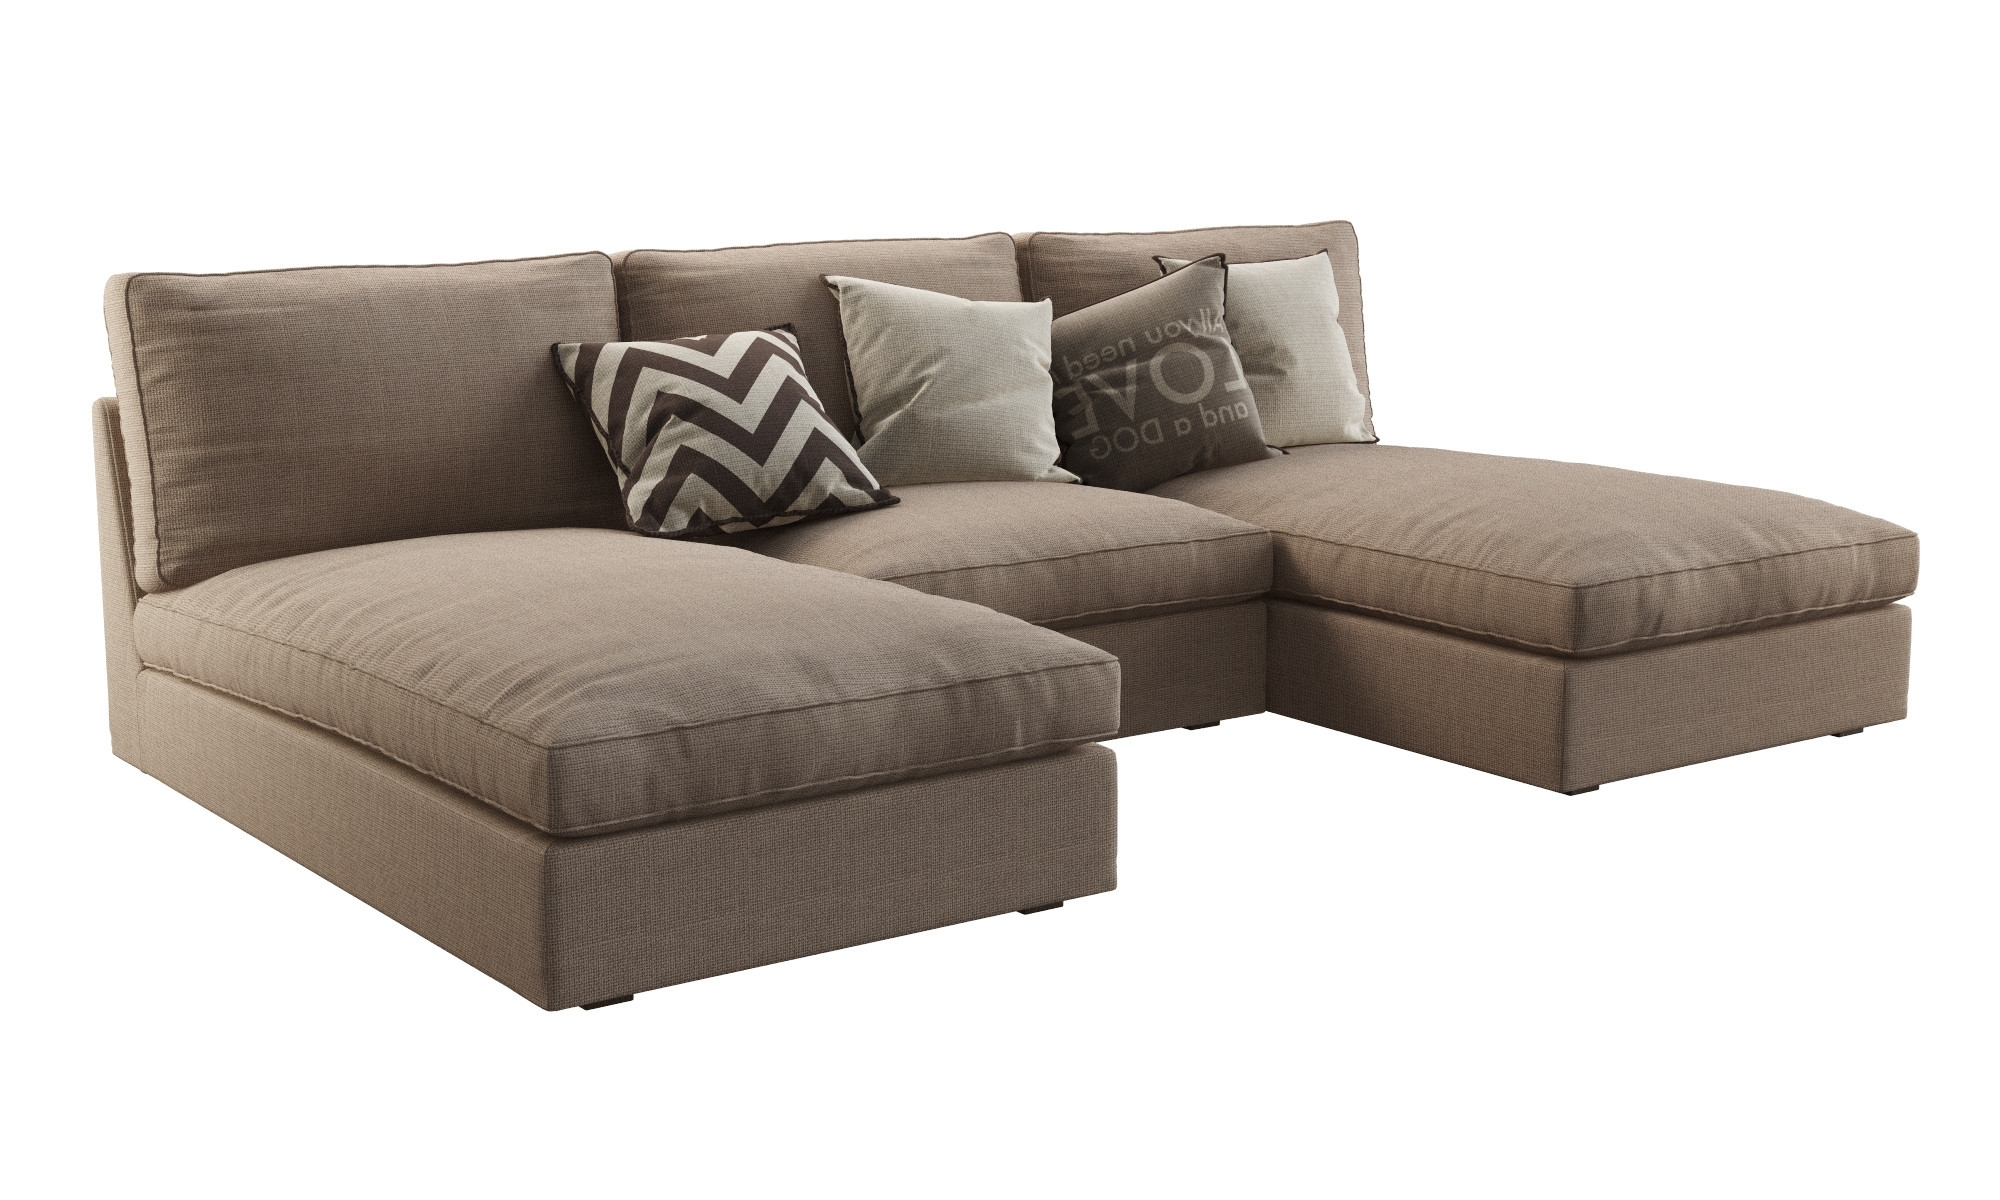 Well Known Ikea Chaise Lounge Chairs Pertaining To Ikea Chaise Lounge – Ikea Chaise Lounge Covers, Ikea Poang Chair (View 14 of 15)